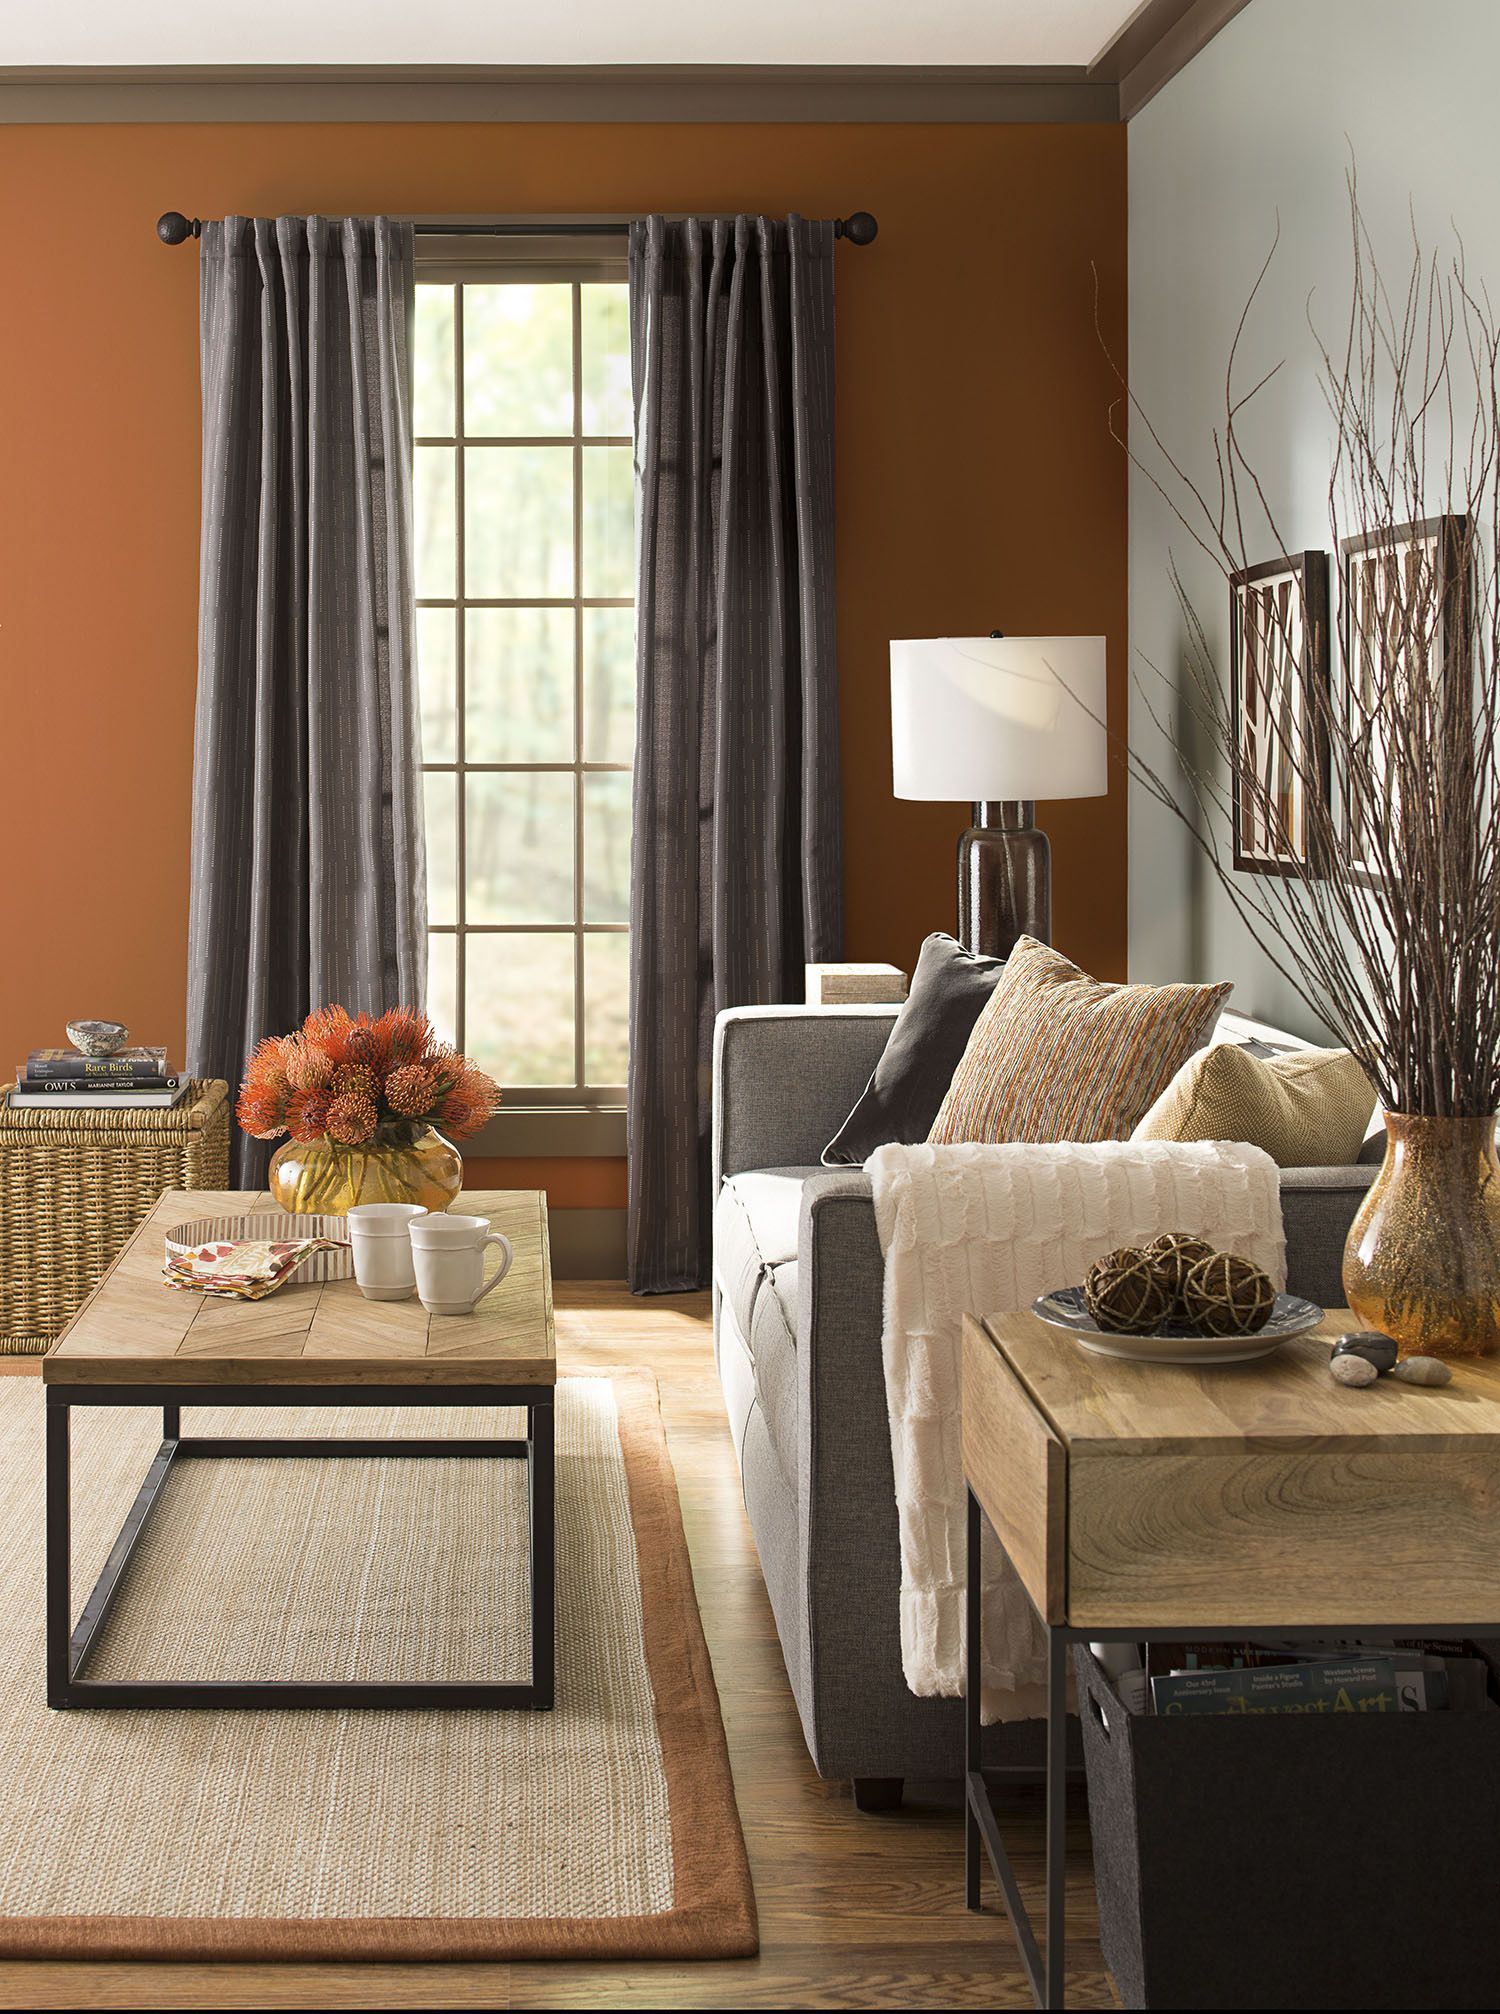 Warm Colors And Metals Adding Harvest Colors Like Amber And